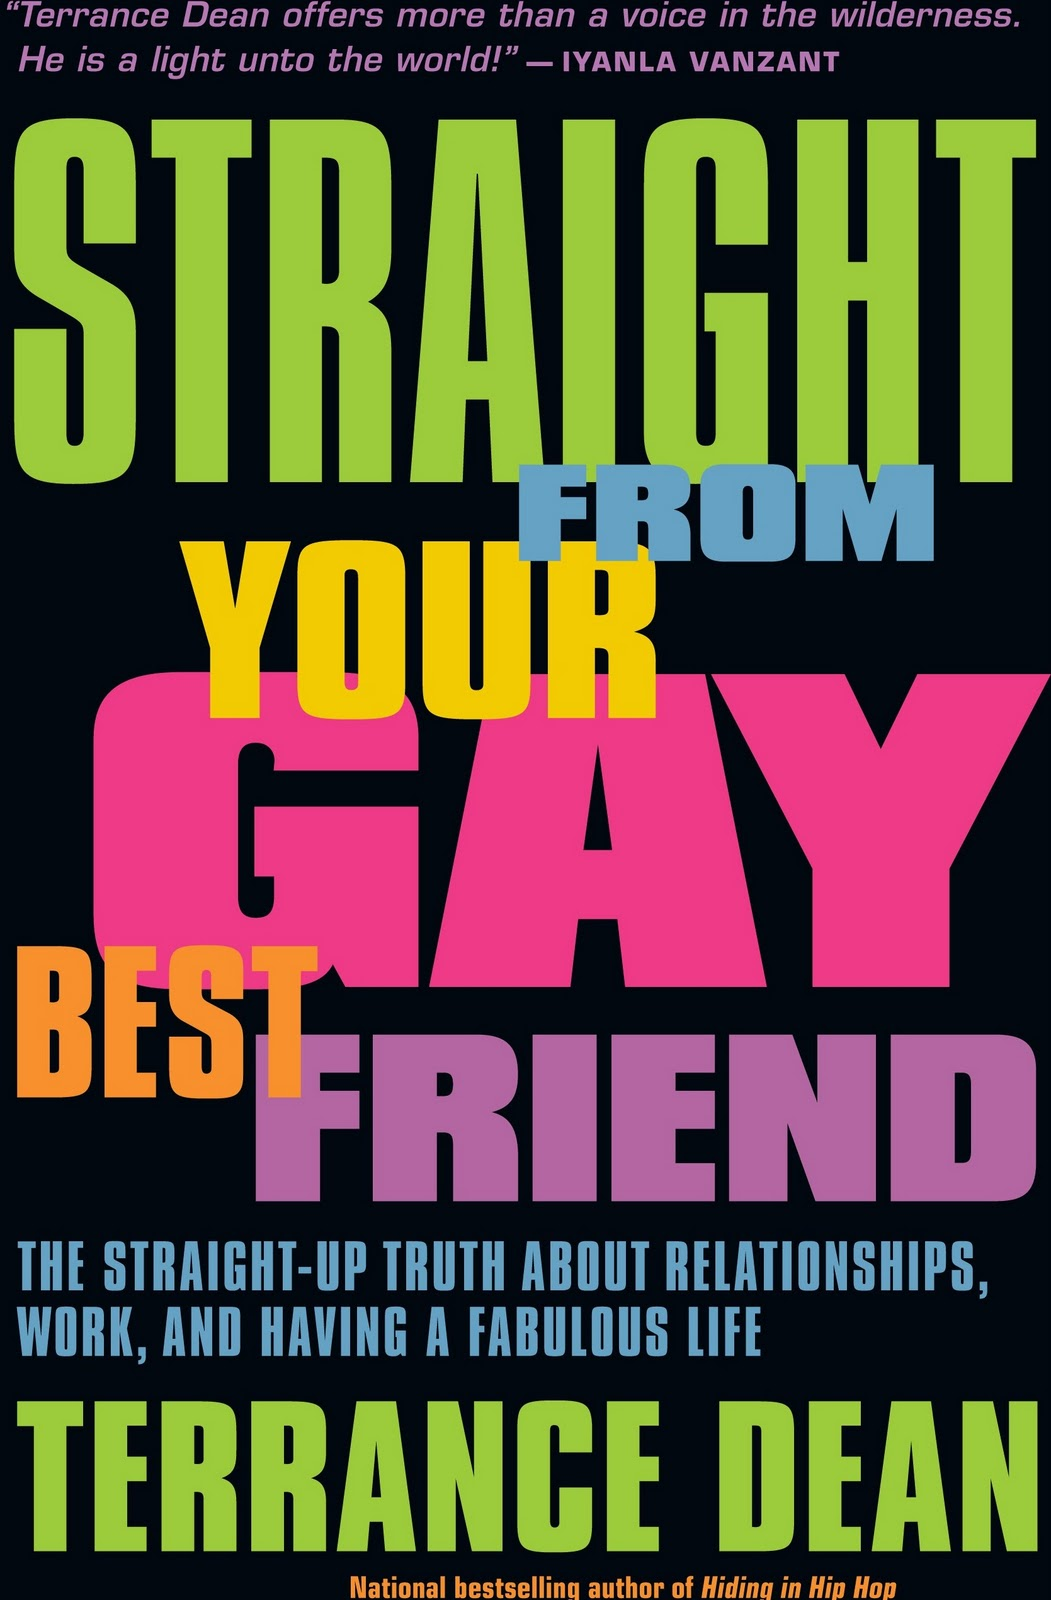 Straight%2BFrom%2BYour%2BGay%2BBest%2BFriend  sex tip/hot oral sex.jpg: